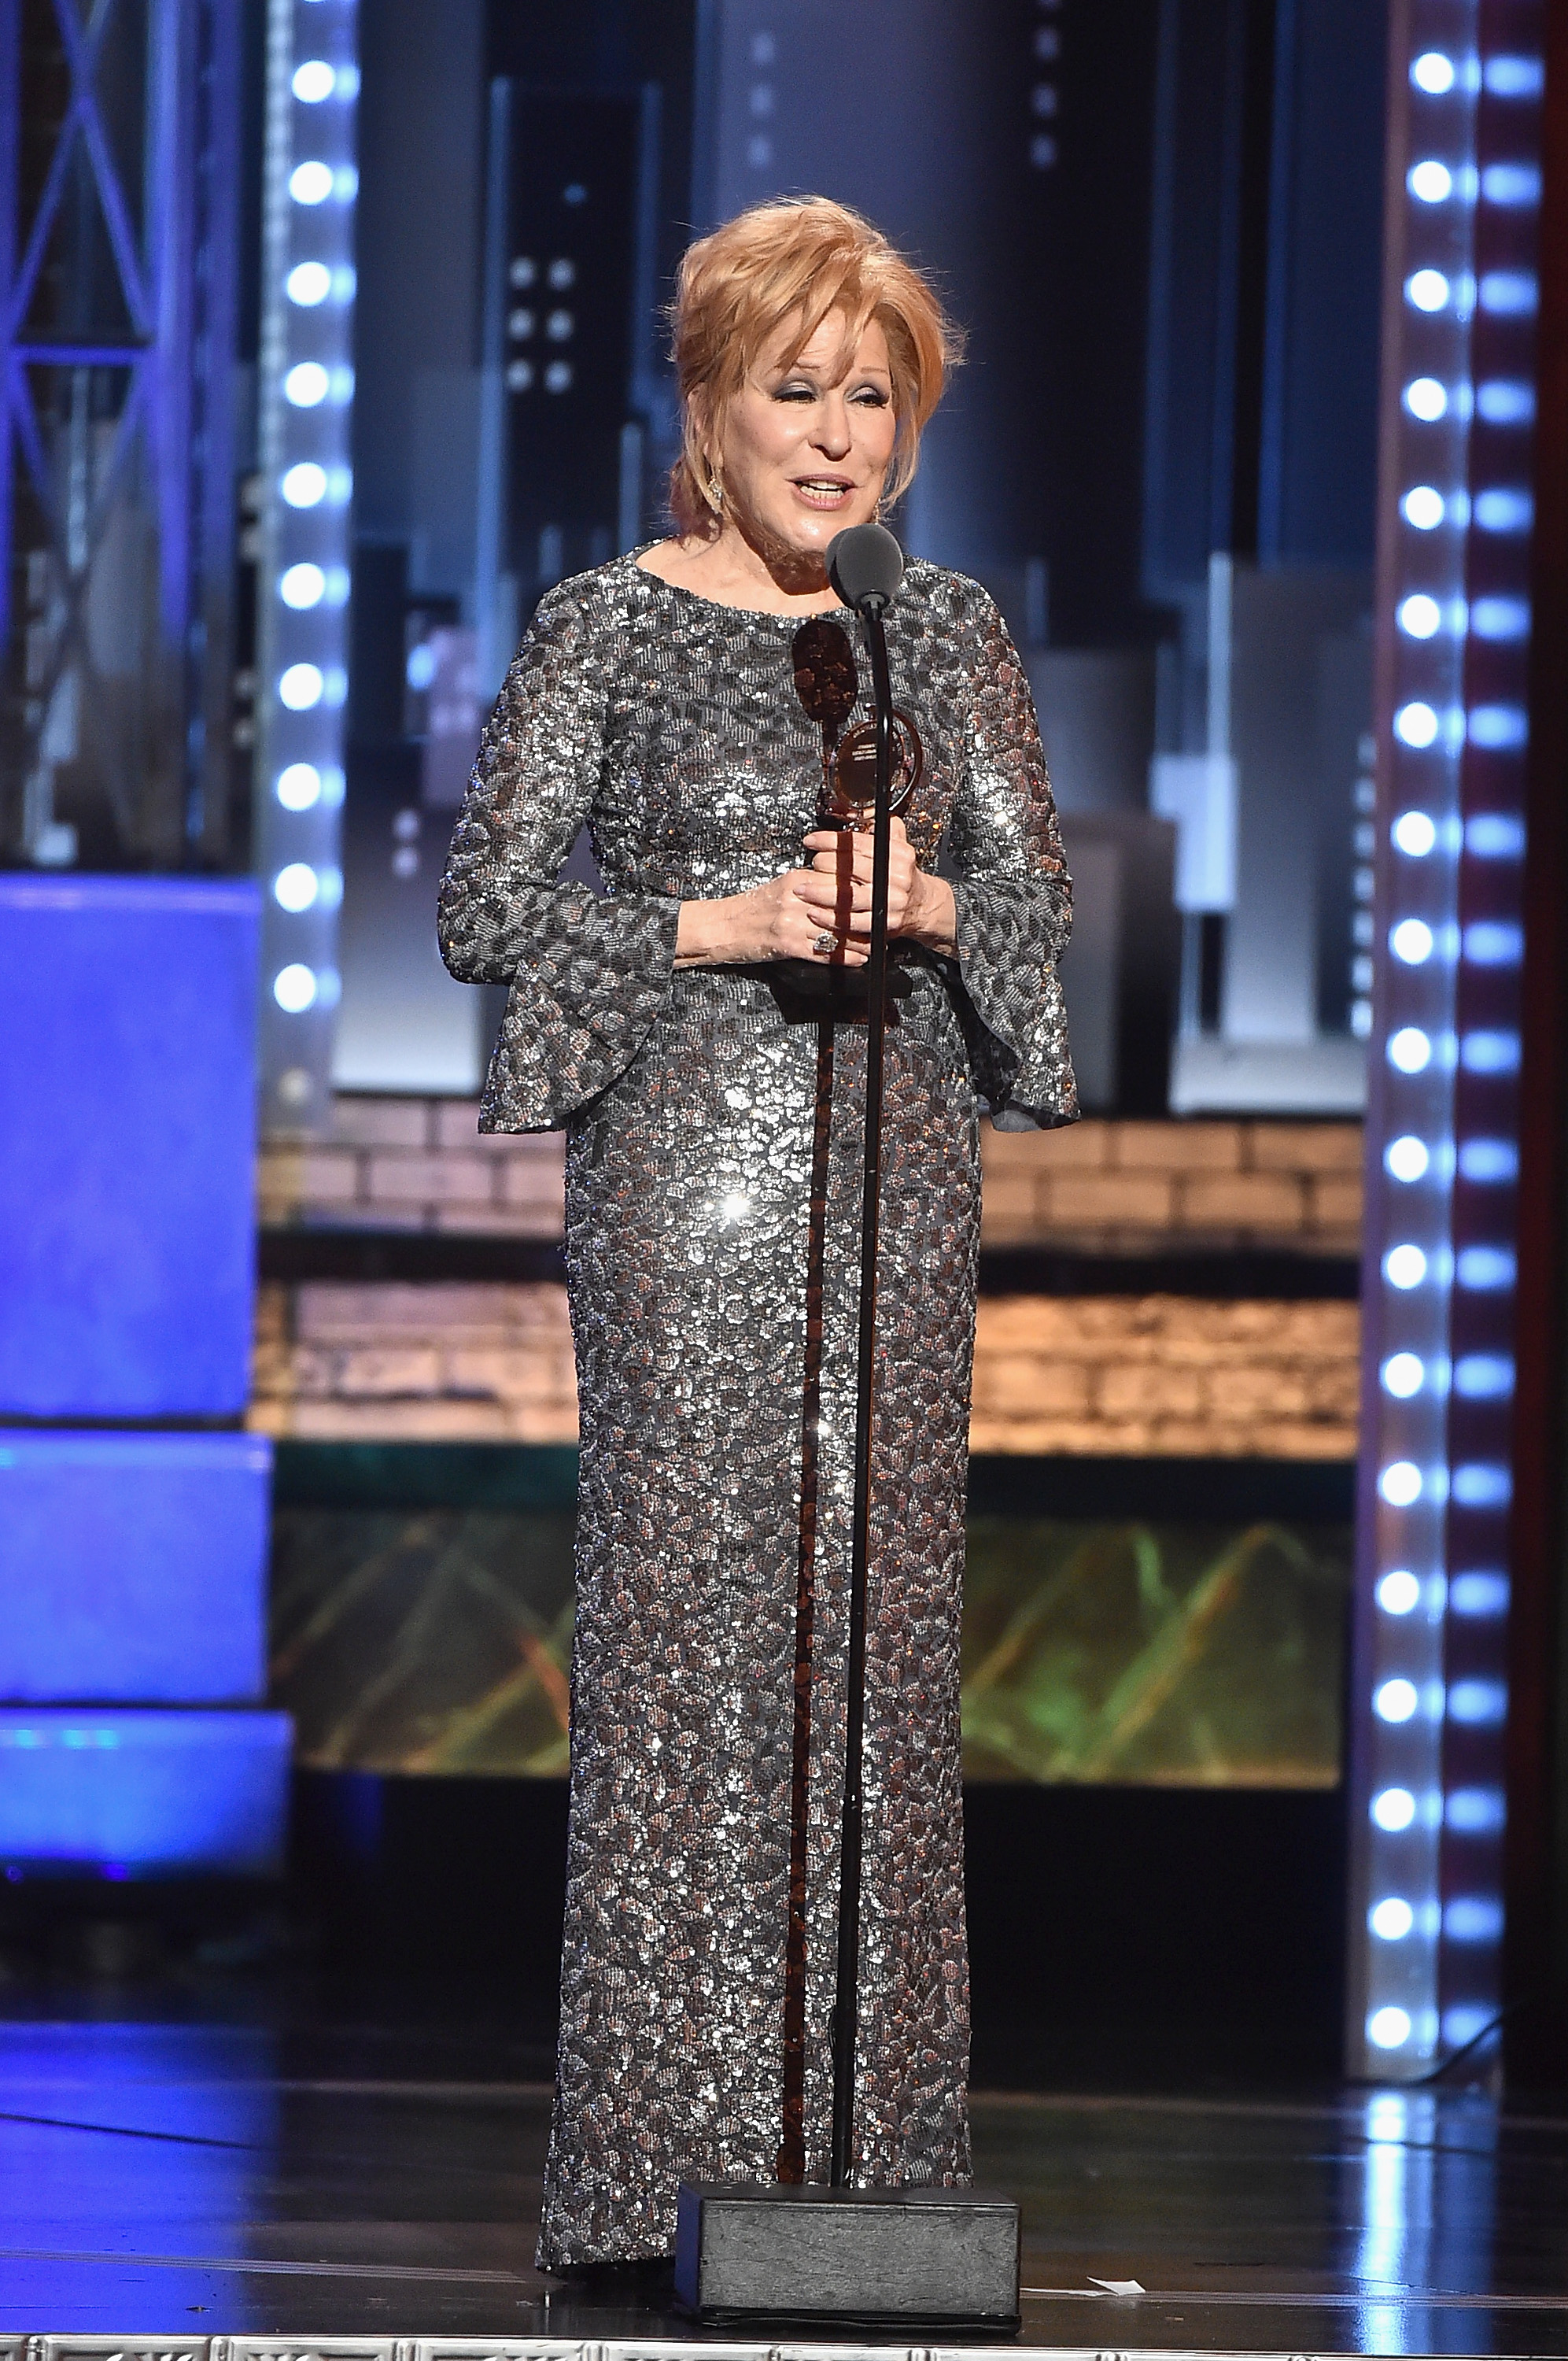 NEW YORK, NY - JUNE 11:  Bette Midler accepts the award for Best Performance by an Actress in a Leading Role in a Musical for Hello, Dolly! onstage during the 2017 Tony Awards at Radio City Music Hall on June 11, 2017 in New York City.  (Photo by Theo Wargo/Getty Images for Tony Awards Productions)